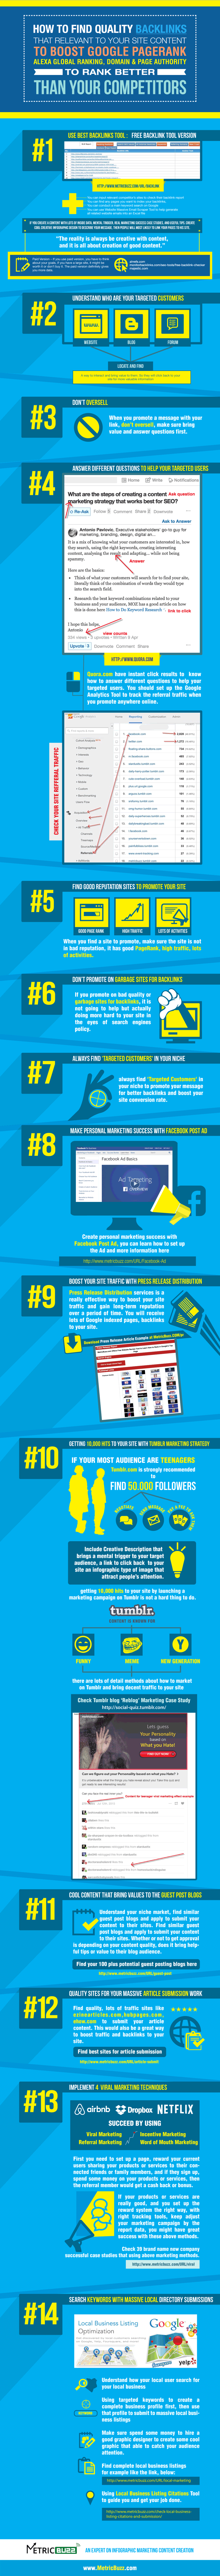 backlinks building strategy infographic